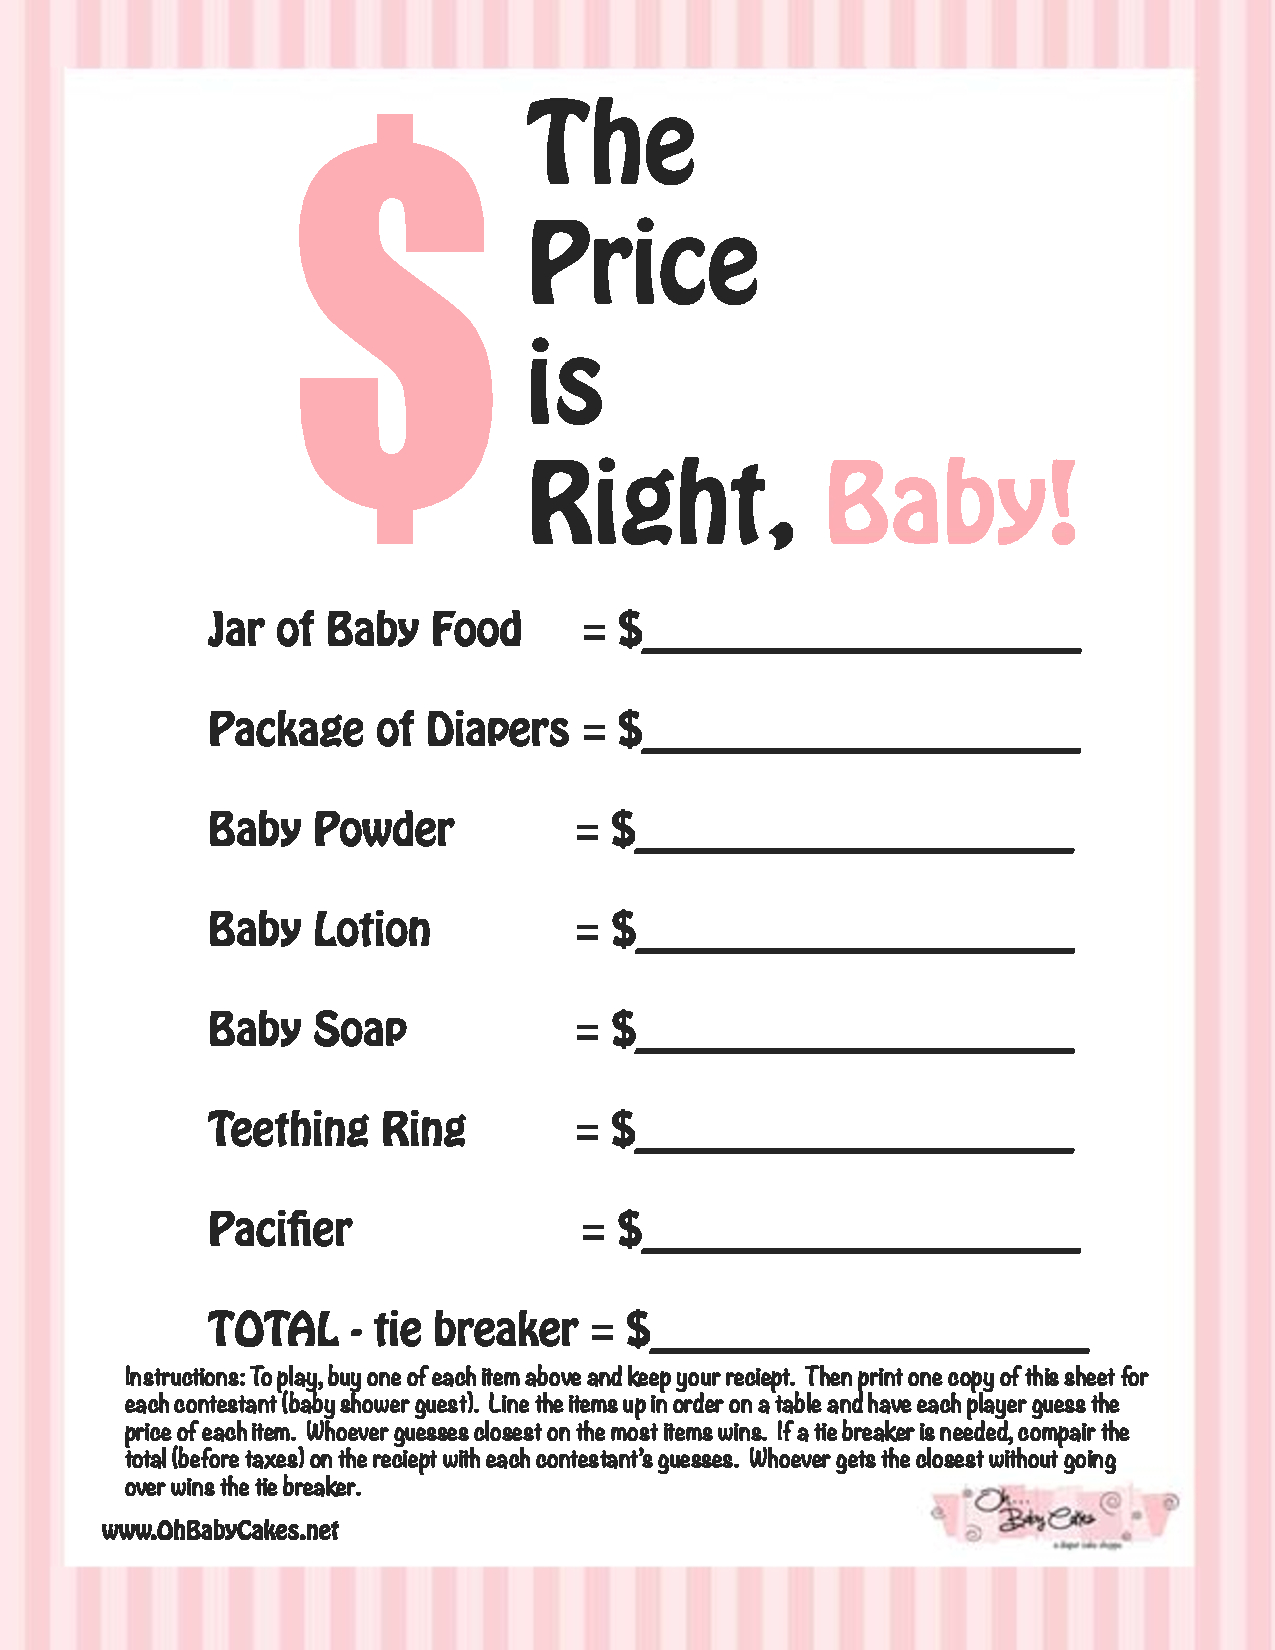 Baby Boy Shower Agreeable Free Printable Baby Shower Games For Large - Free Printable Price Is Right Baby Shower Game